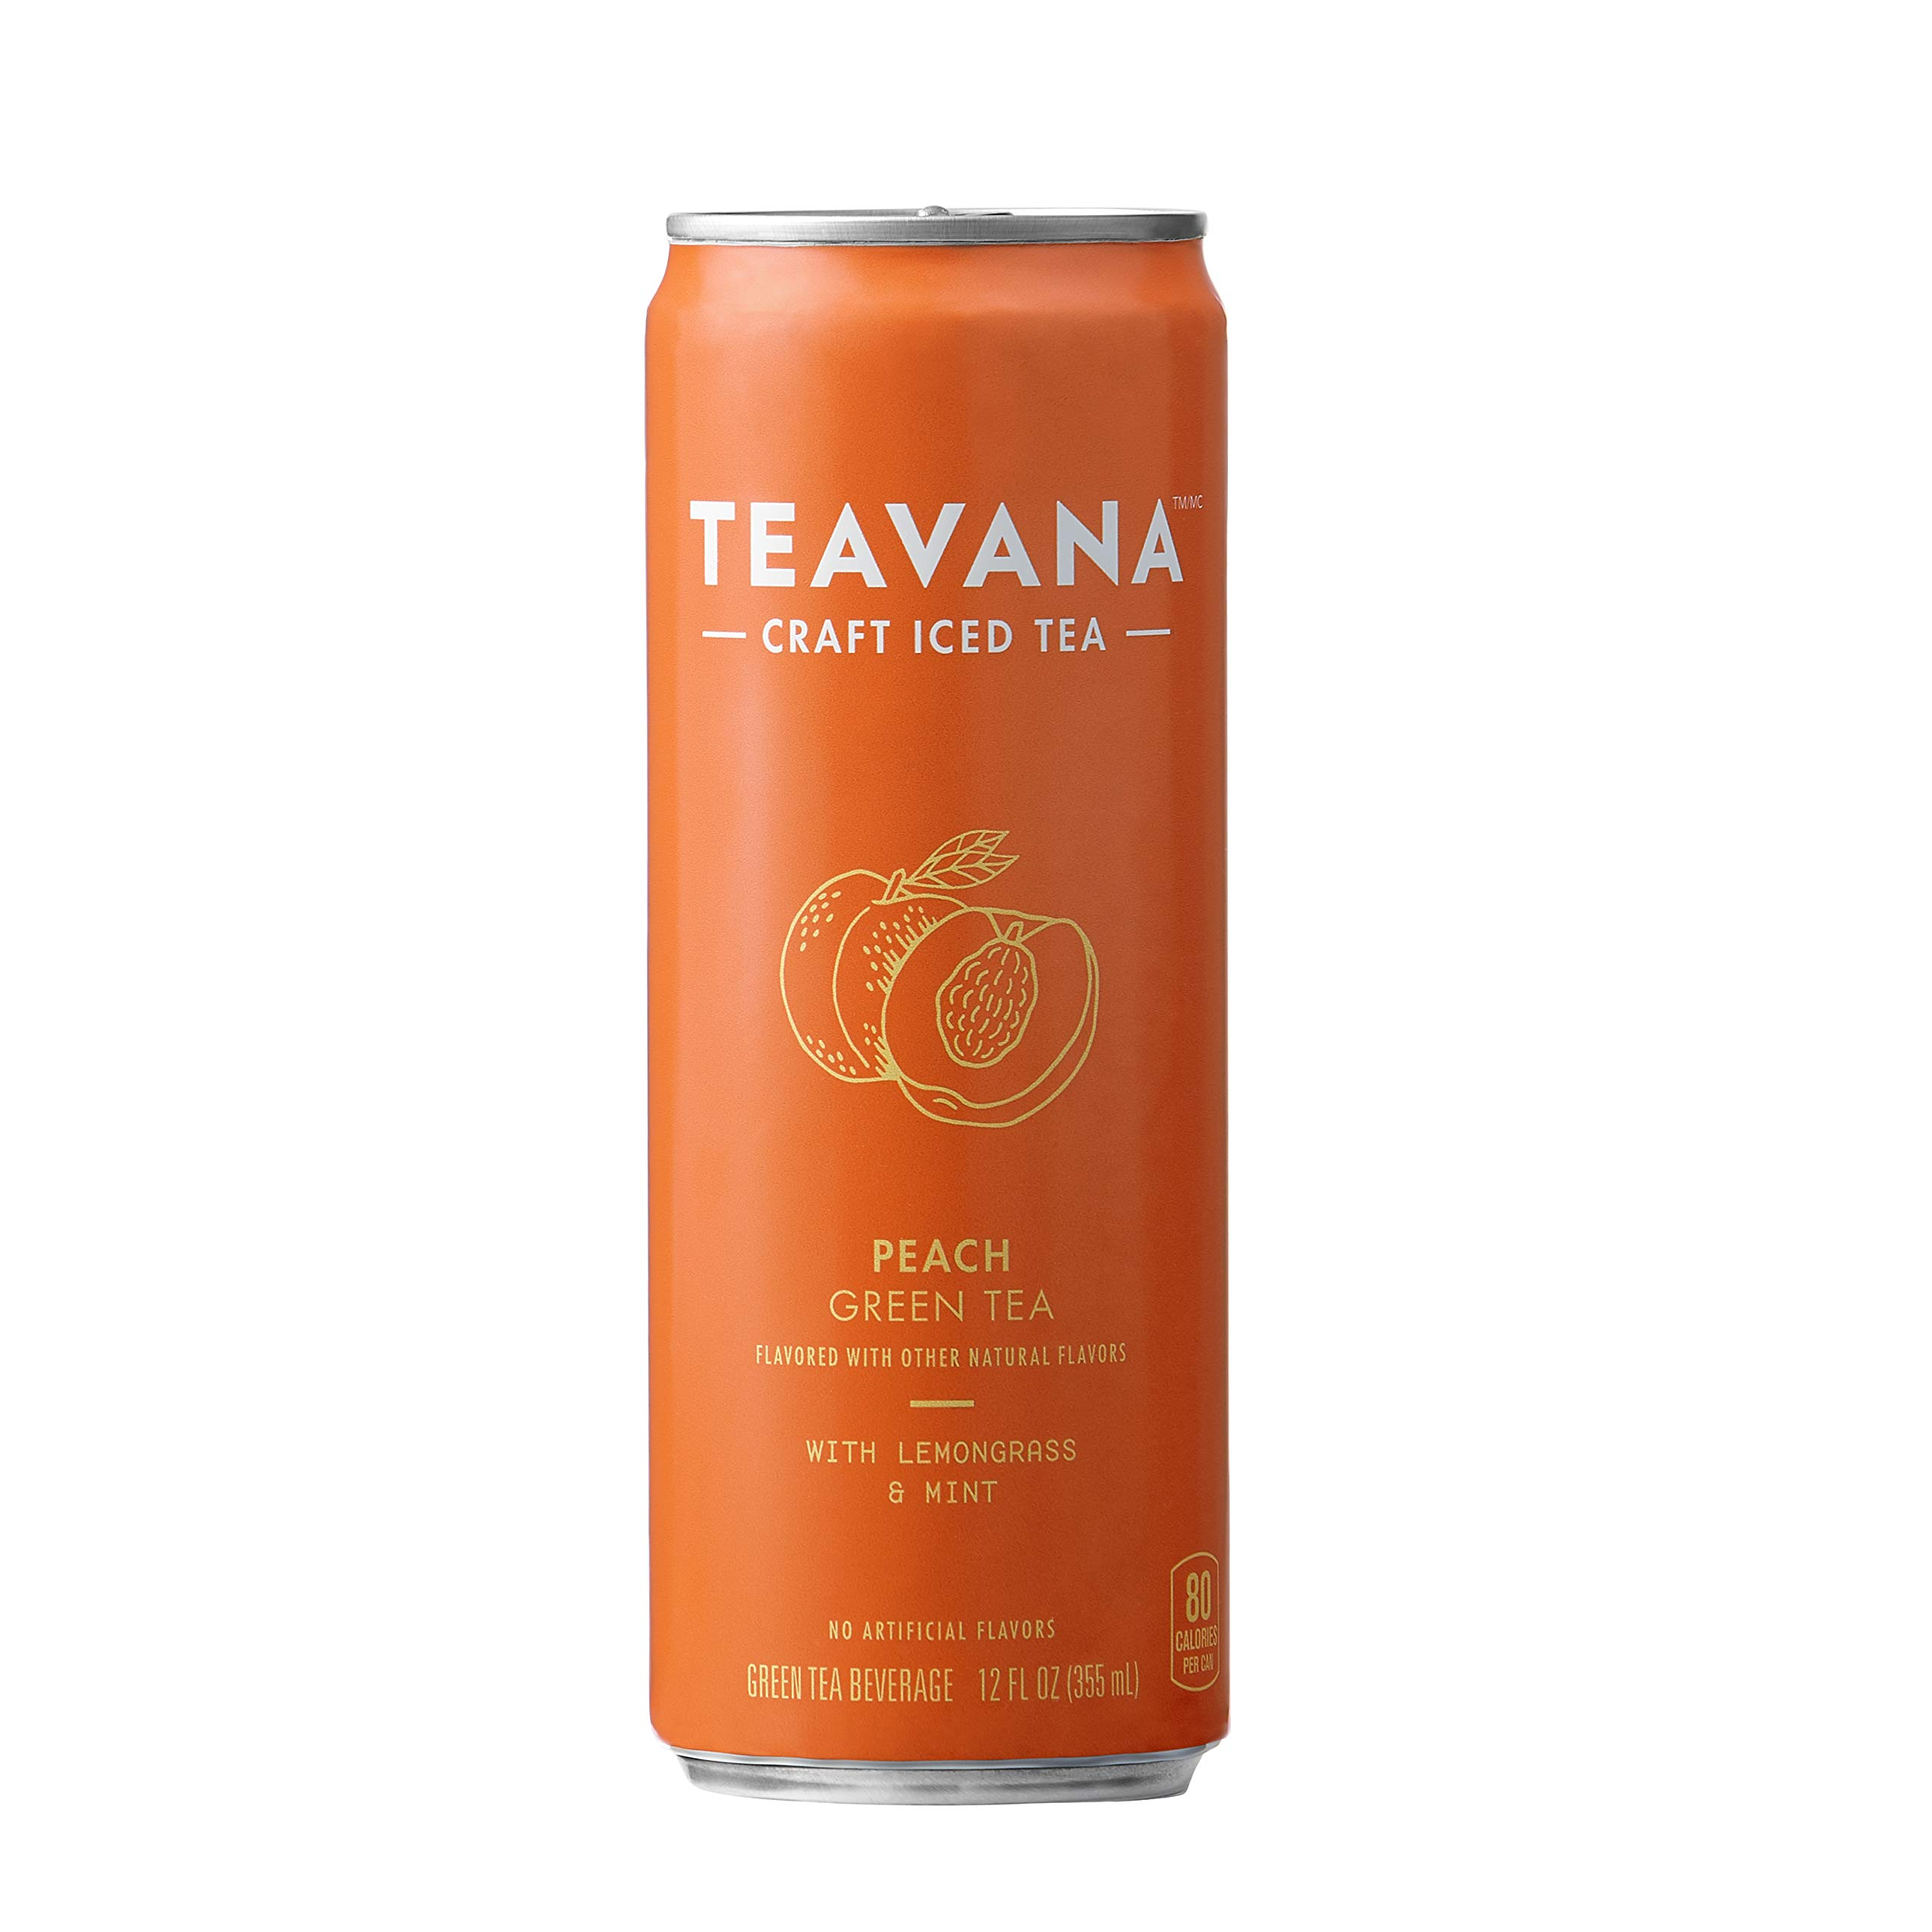 Teavana Craft Iced Tea, Peach Green Tea, 12 Fl. Oz. Cans (Pack Of 12) by Teavana